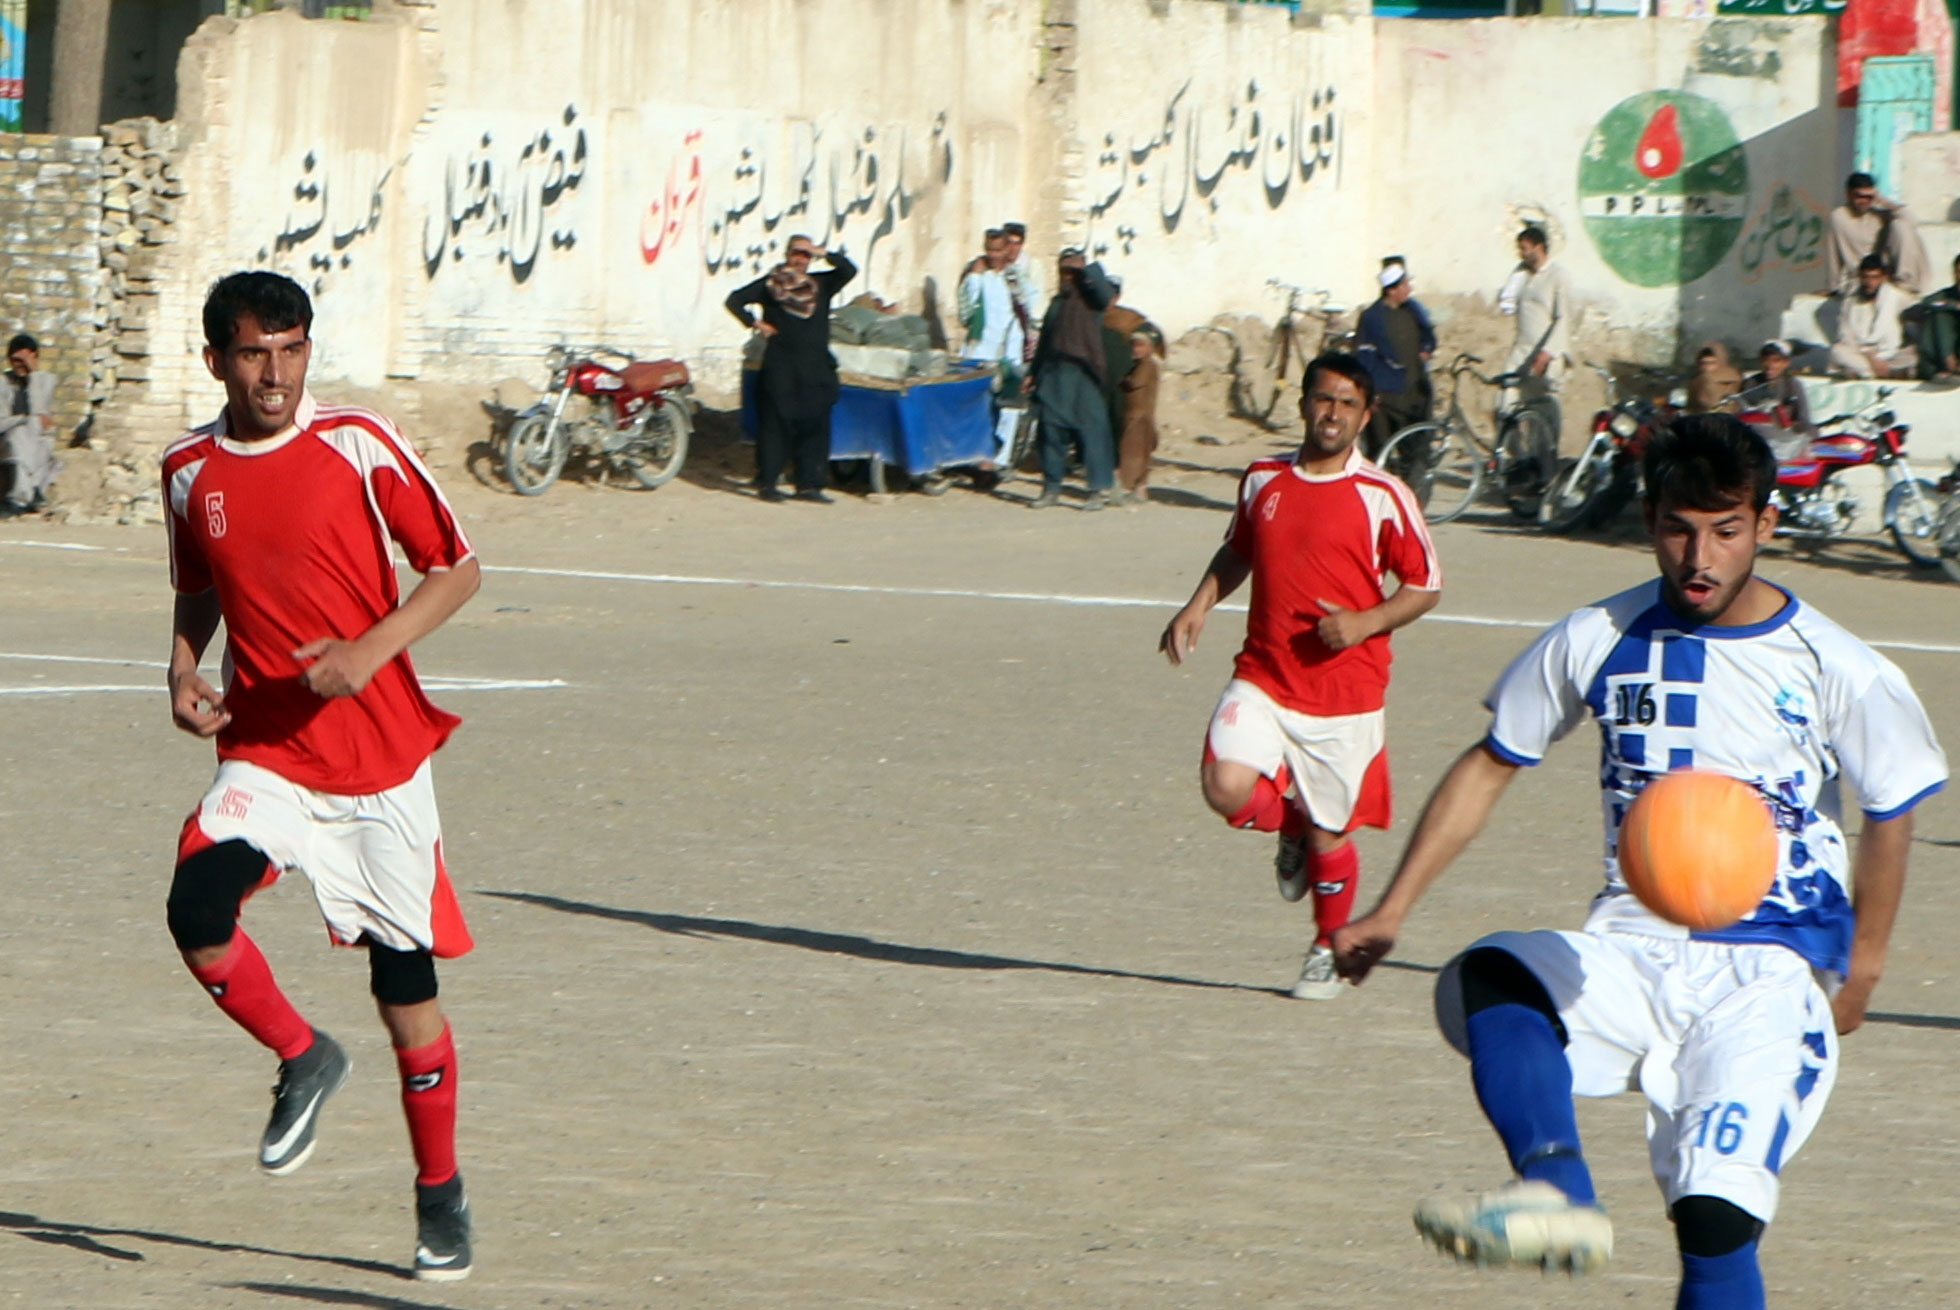 Ufone Balochistan Football Cup: Quetta all set to host the Quarterfinals from today